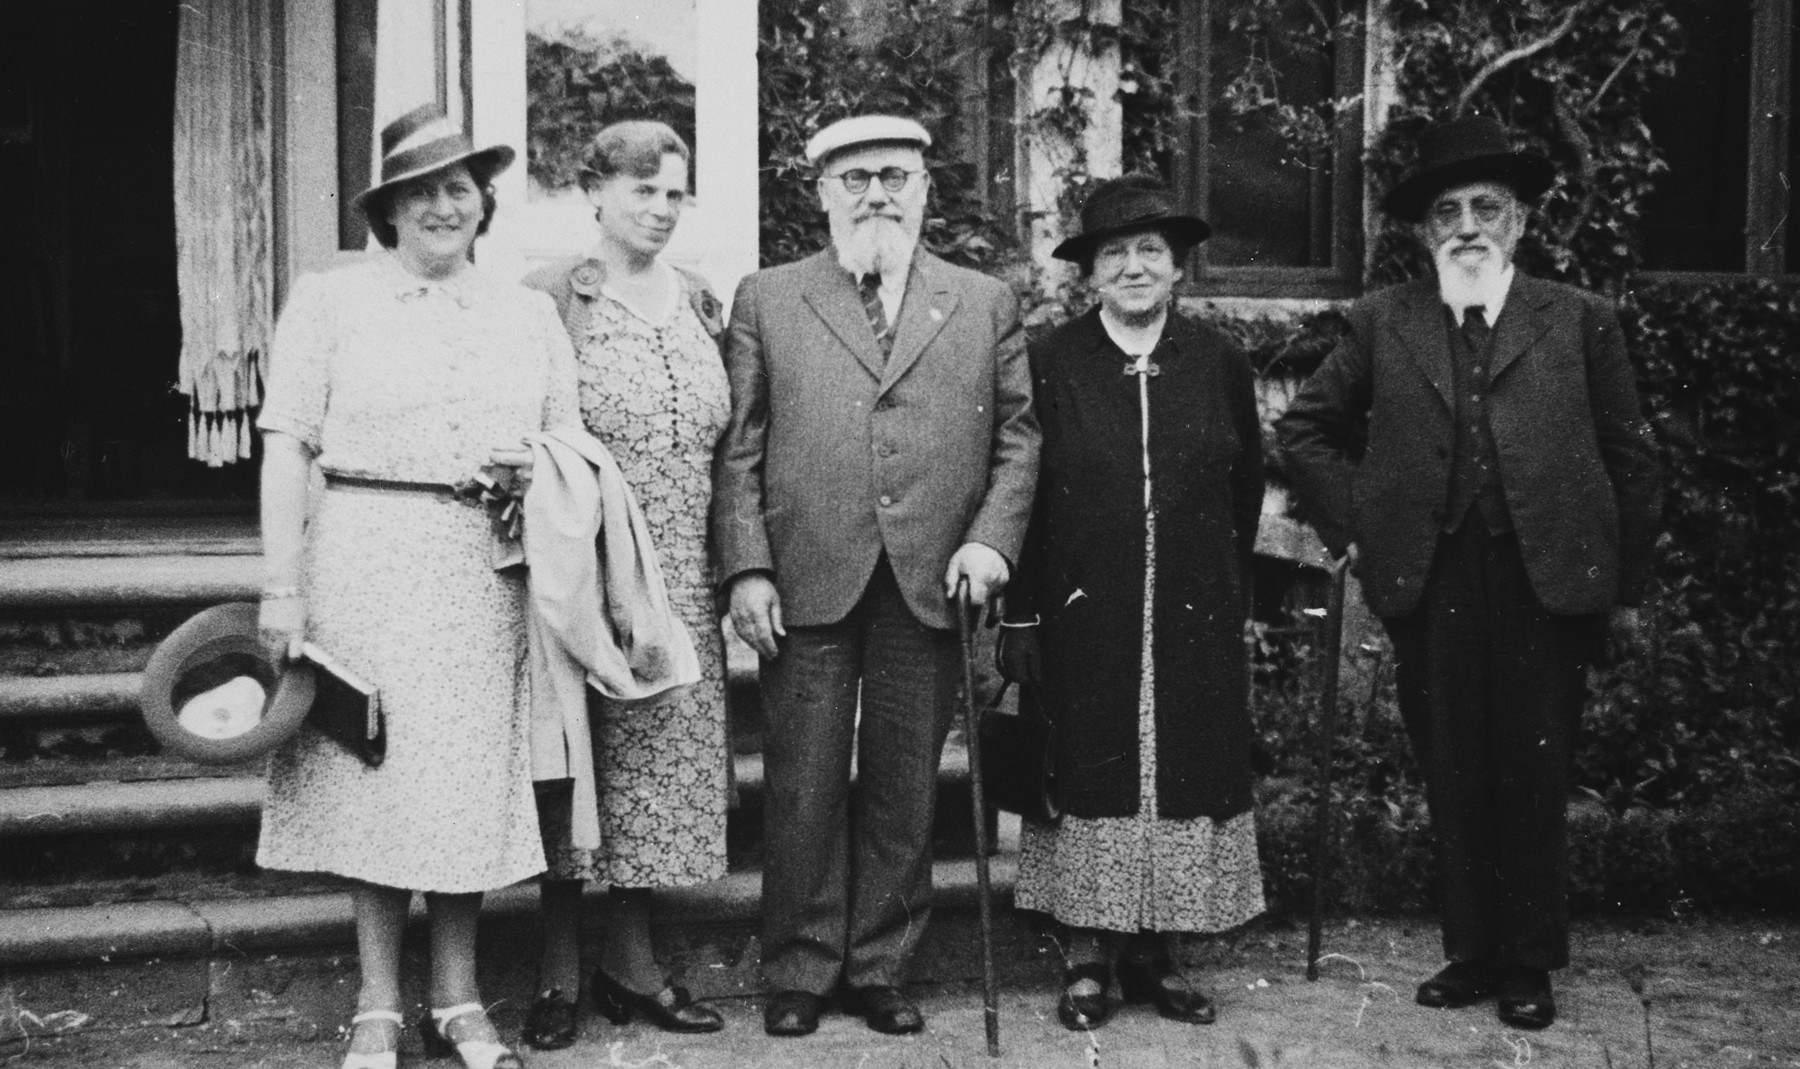 Five Danish Jews pose outside a home in Copenhagen.  Among those pictured are the Hartvigs, the grandparents of Hetty Fisch.